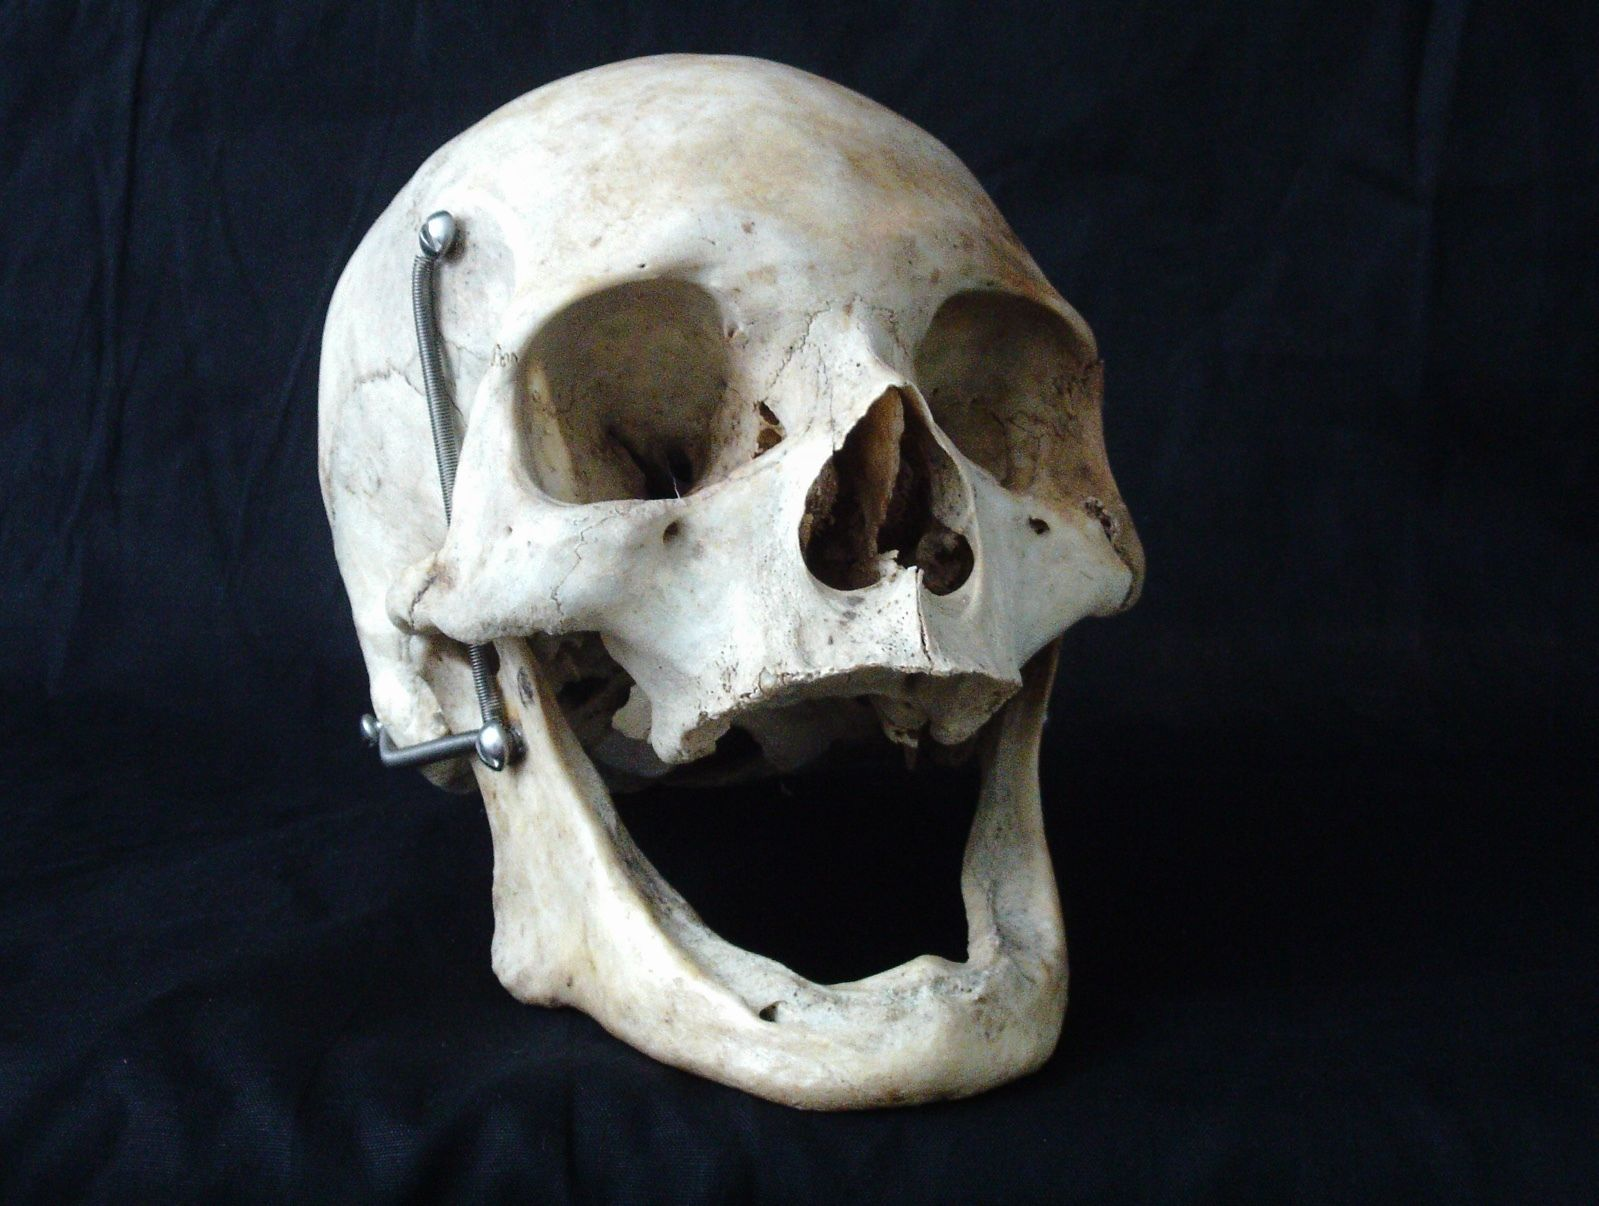 Human Skull How To Obtain A Real Human Skull A Guide For Buyers